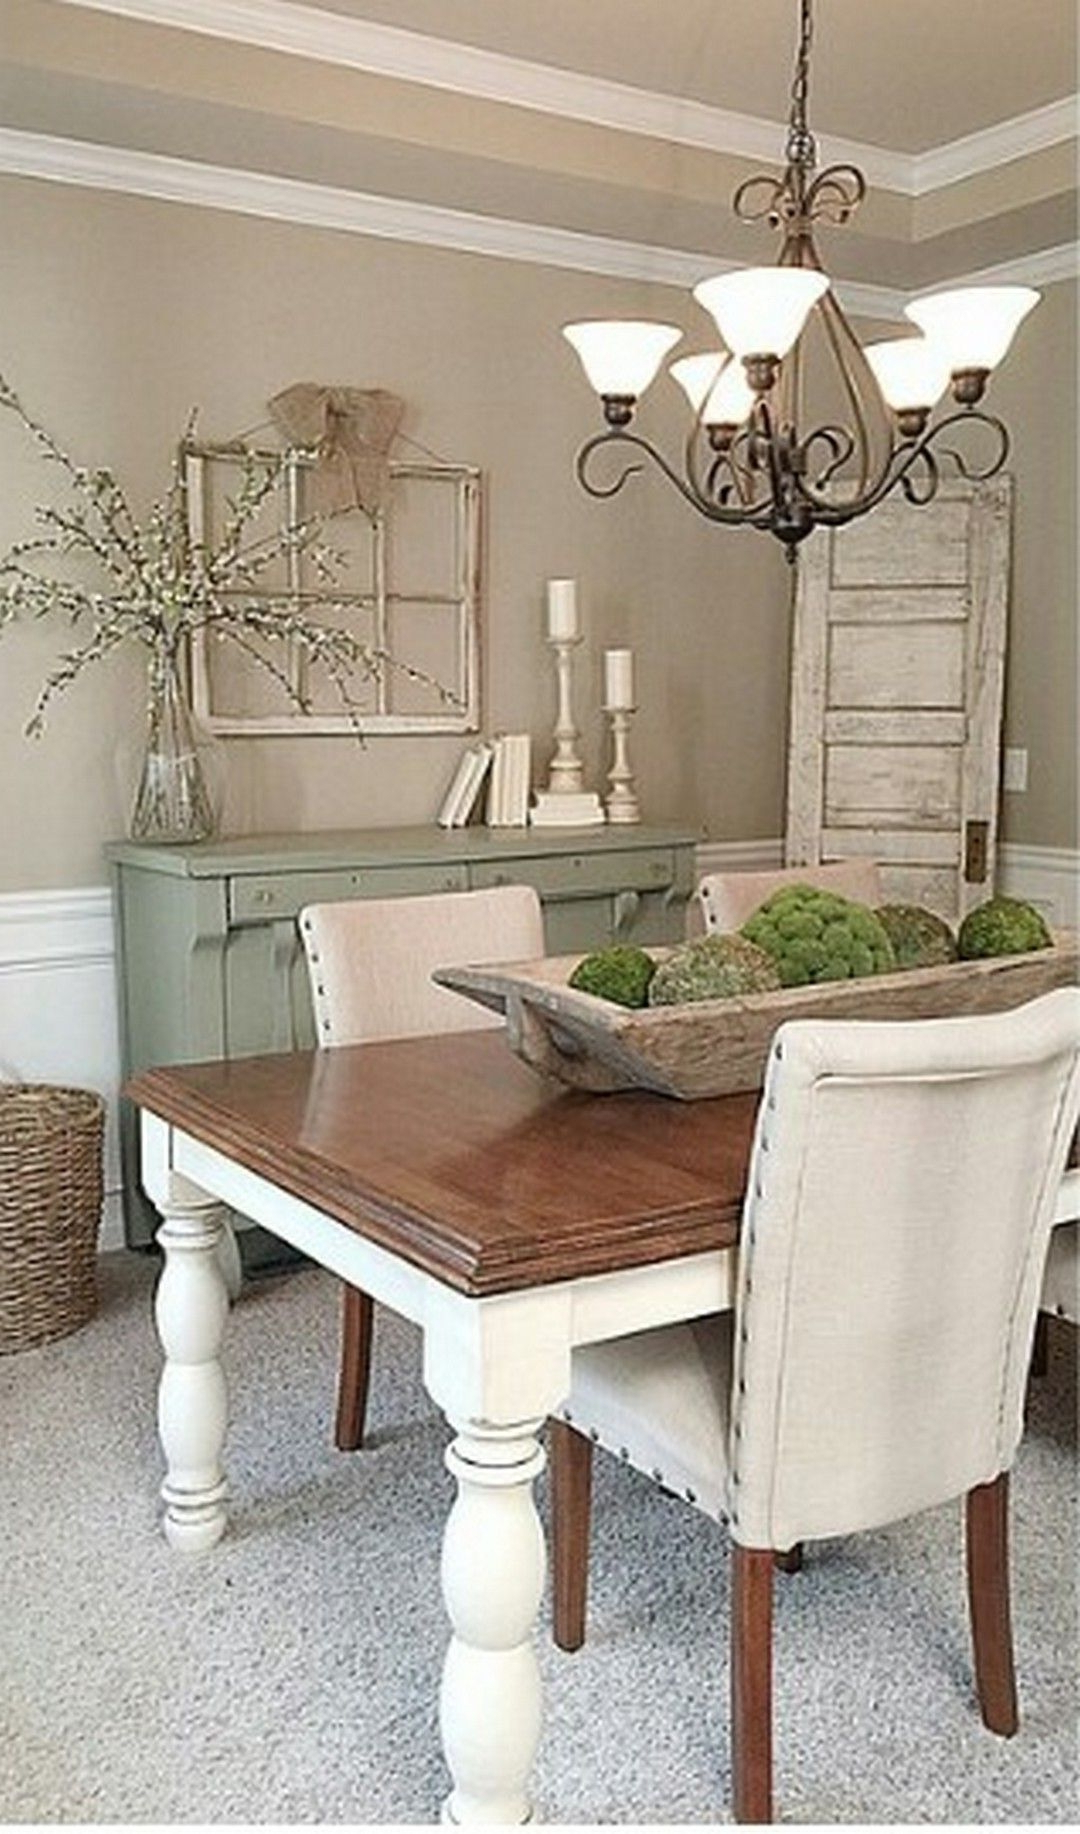 Modern Rustic Farmhouse Dining Room Style Home – Saltandblues With Most Recent Small Rustic Look Dining Tables (Gallery 12 of 30)